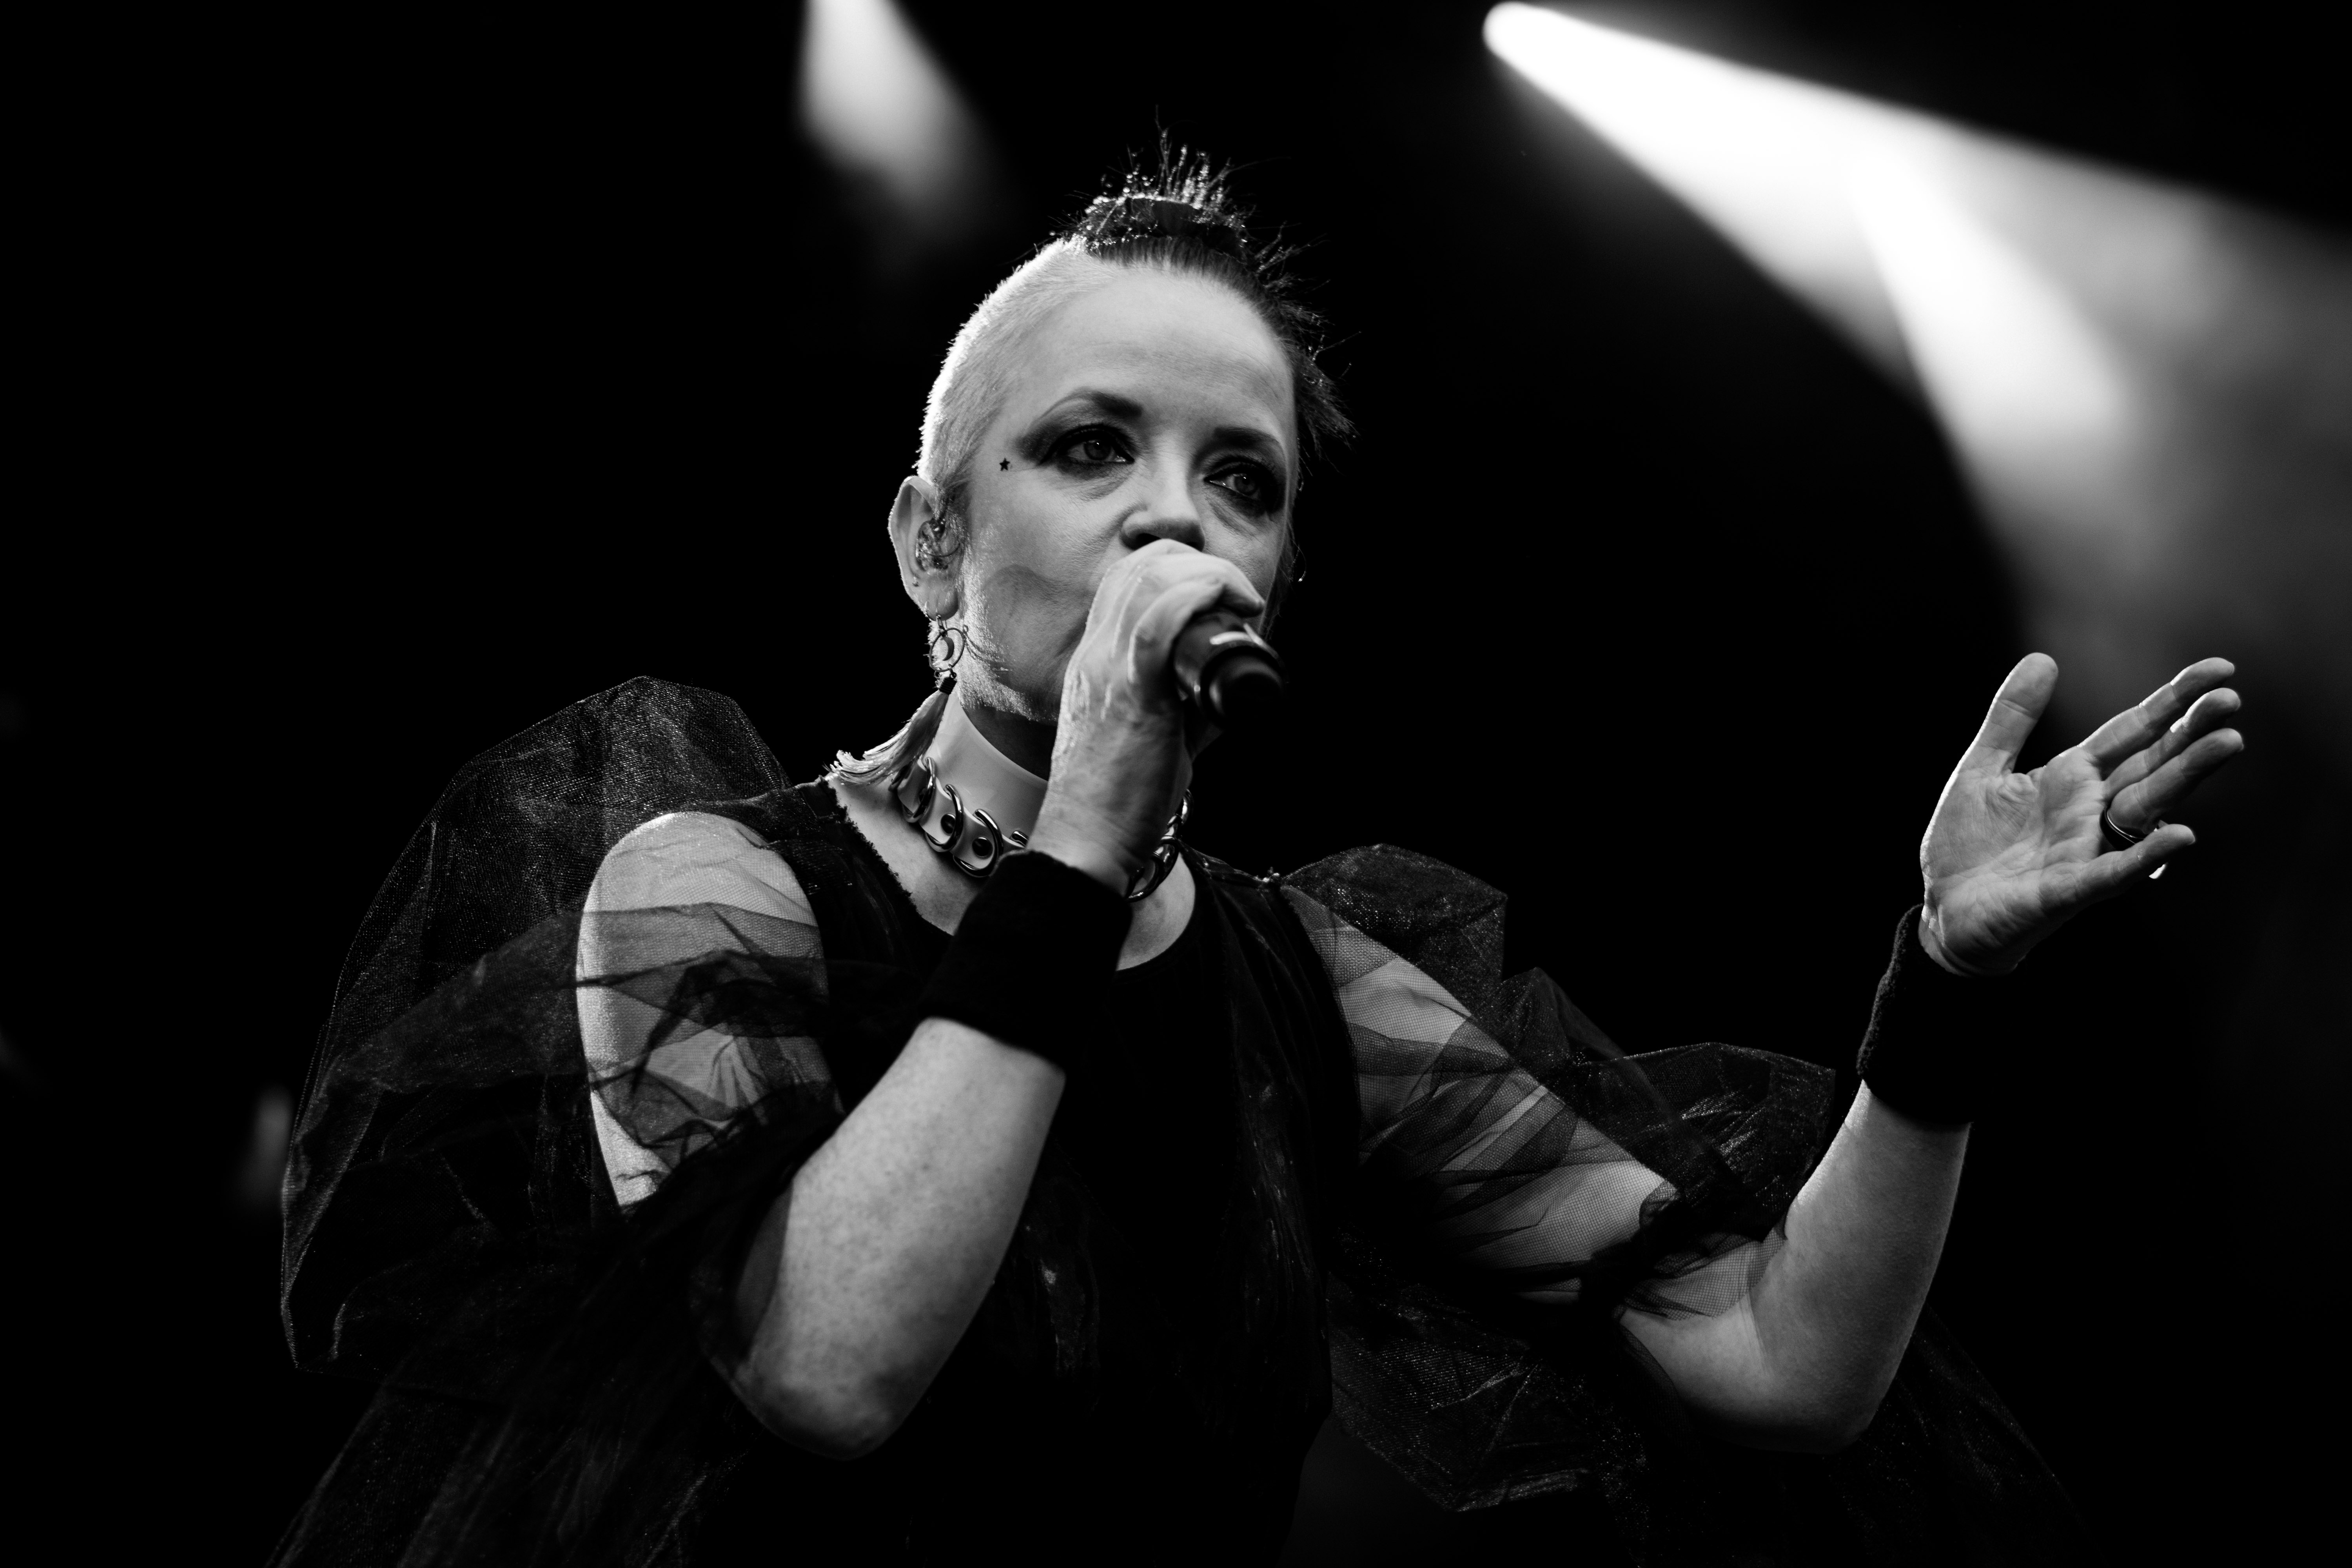 Photos | Garbage at the Iveagh Gardens with support from whenyoung